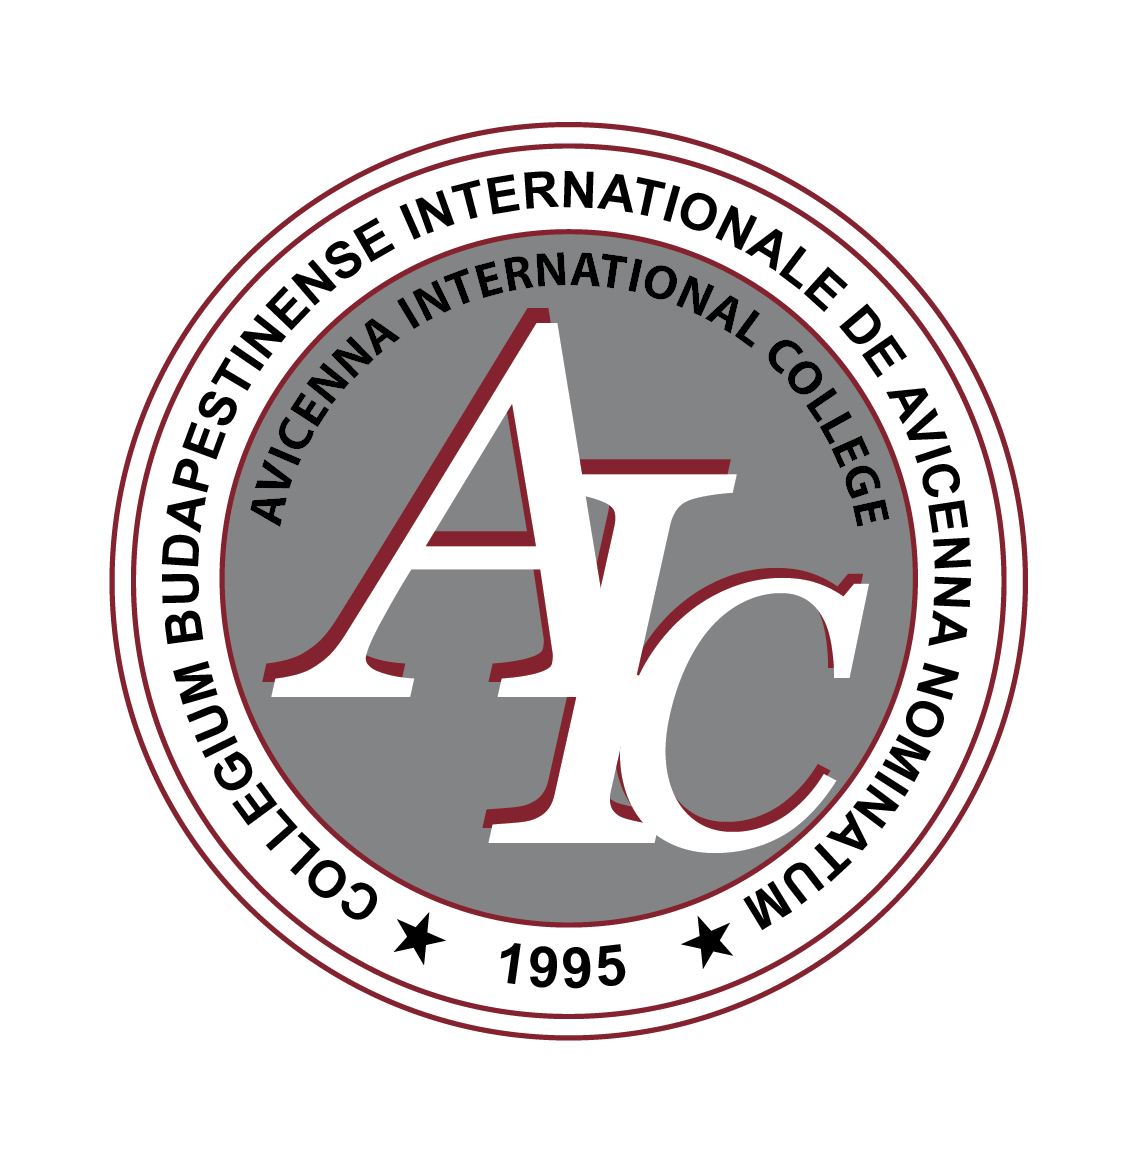 Avicenna International Academy